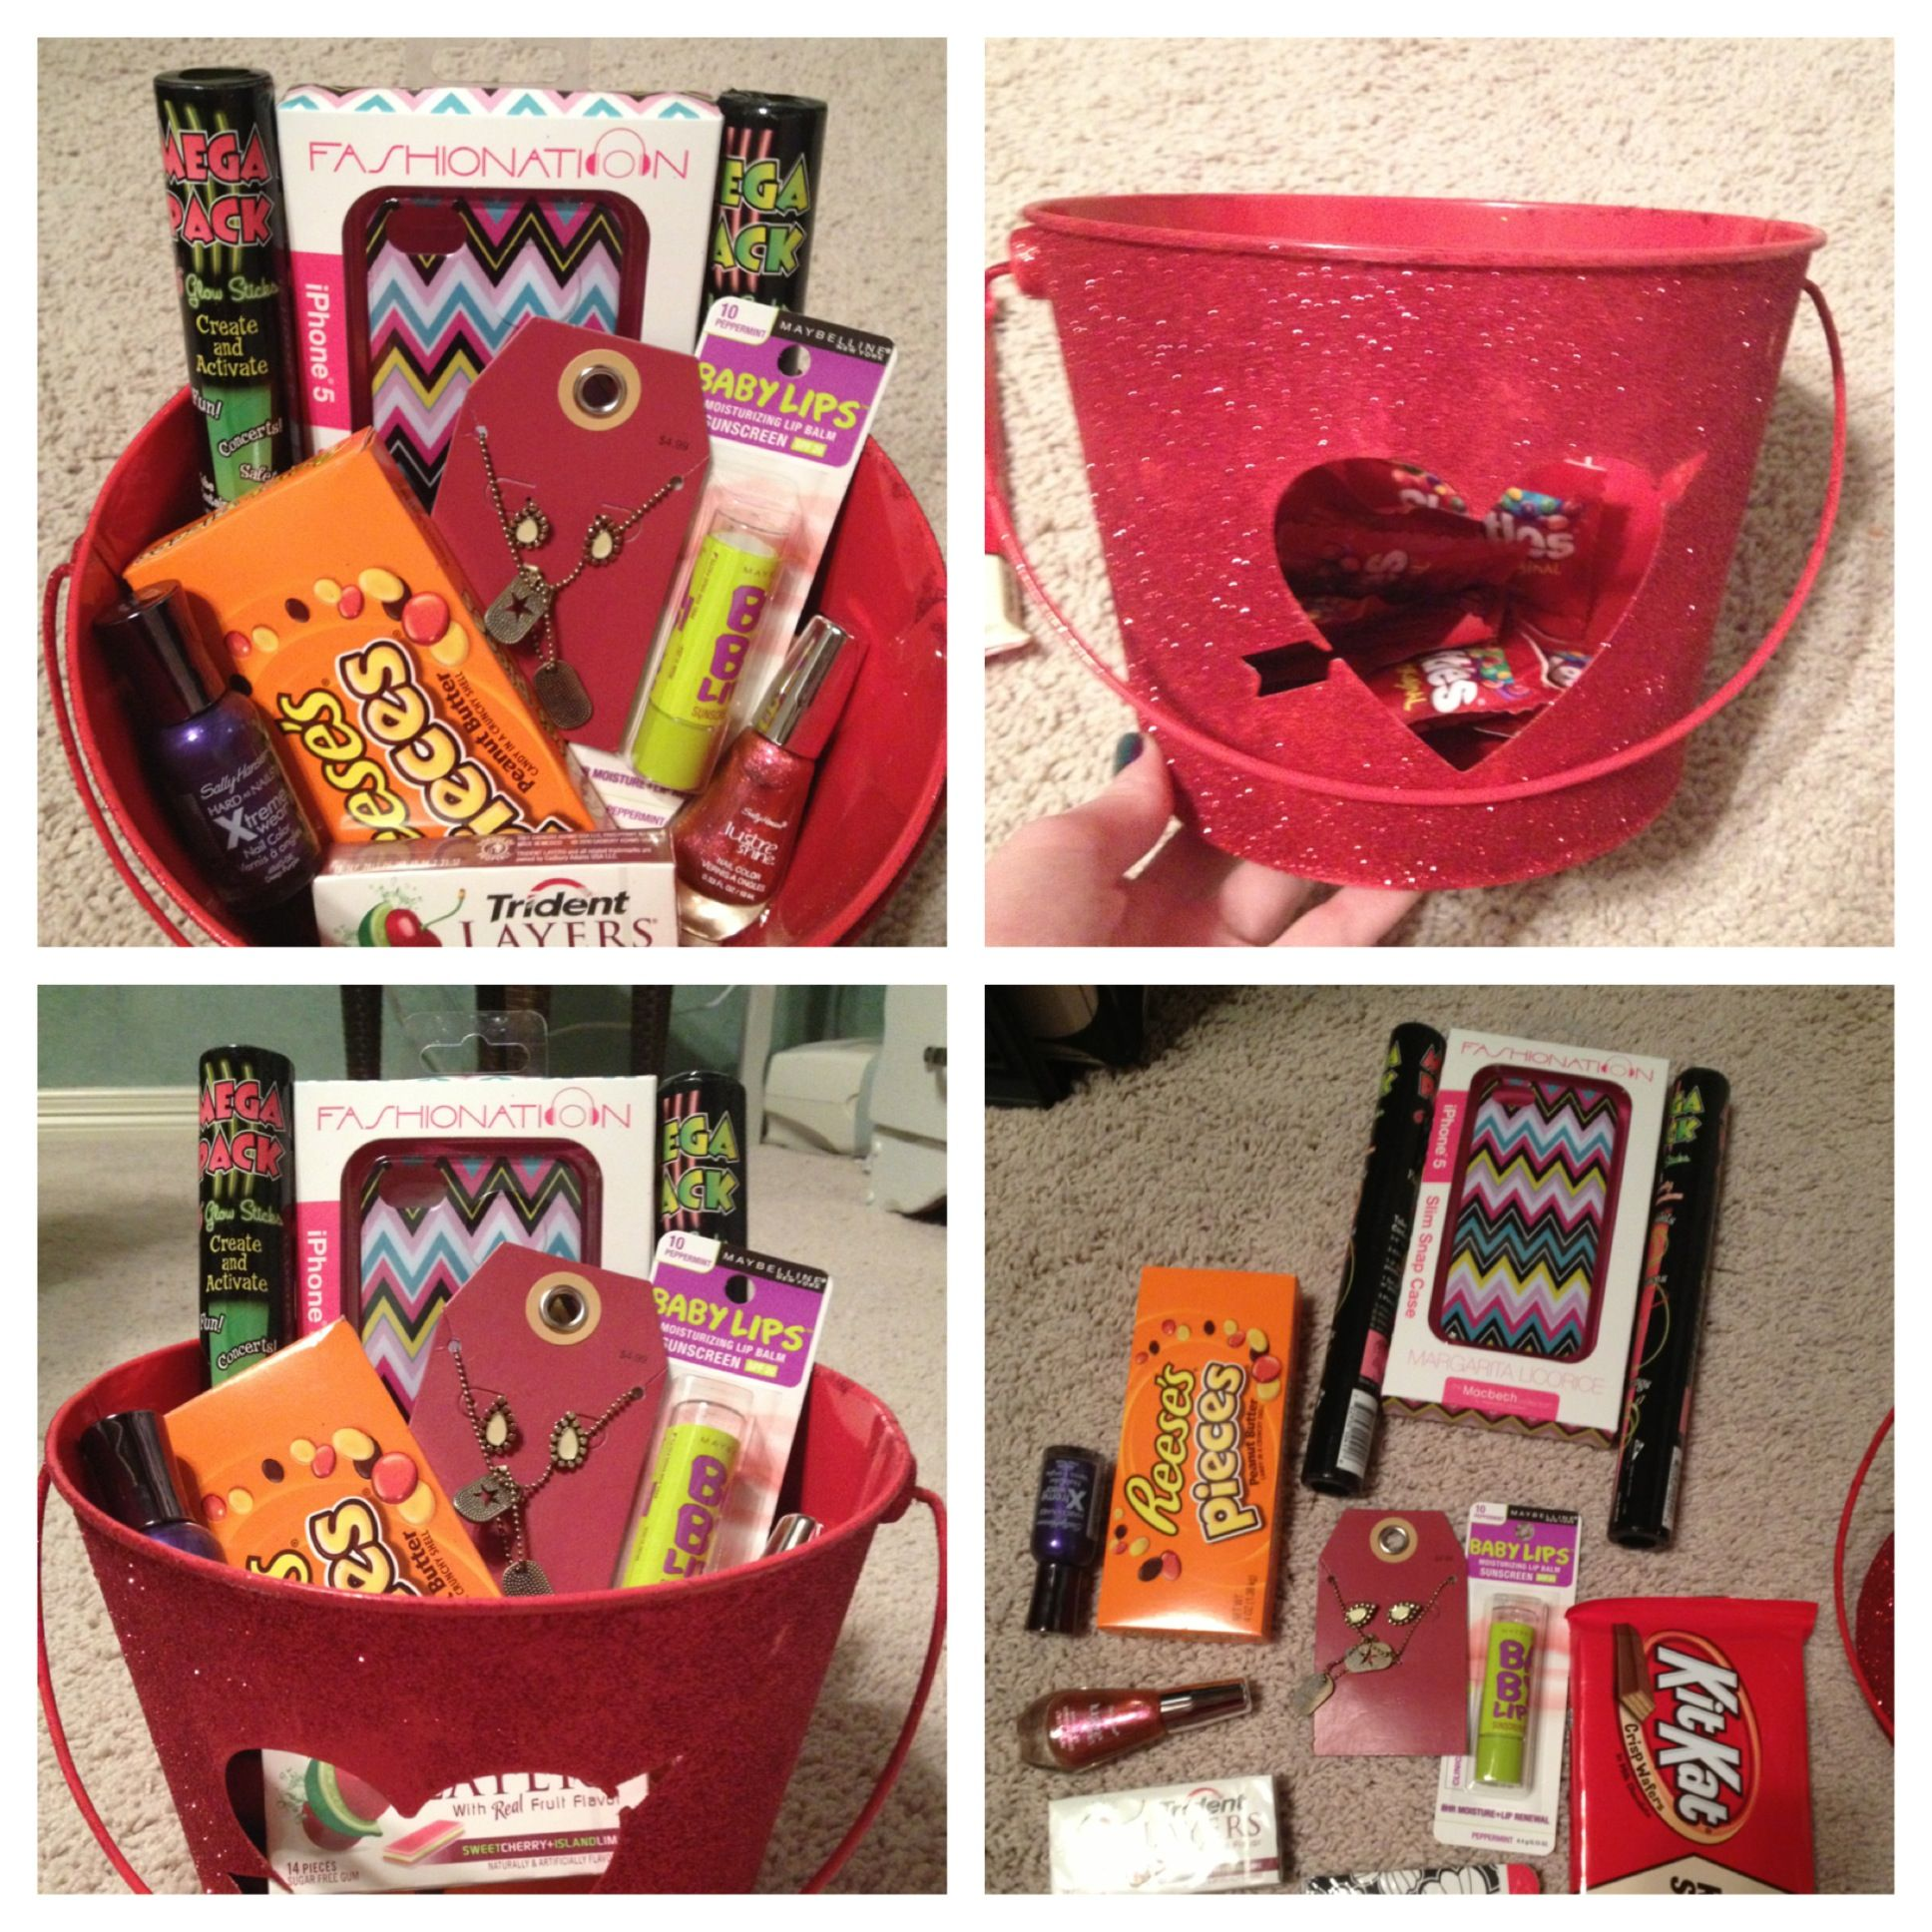 Cute Teen Girl Birthday Present. With IPhone Cases, Candy, Make Up, Jewelry, And Fun Glow Sticks